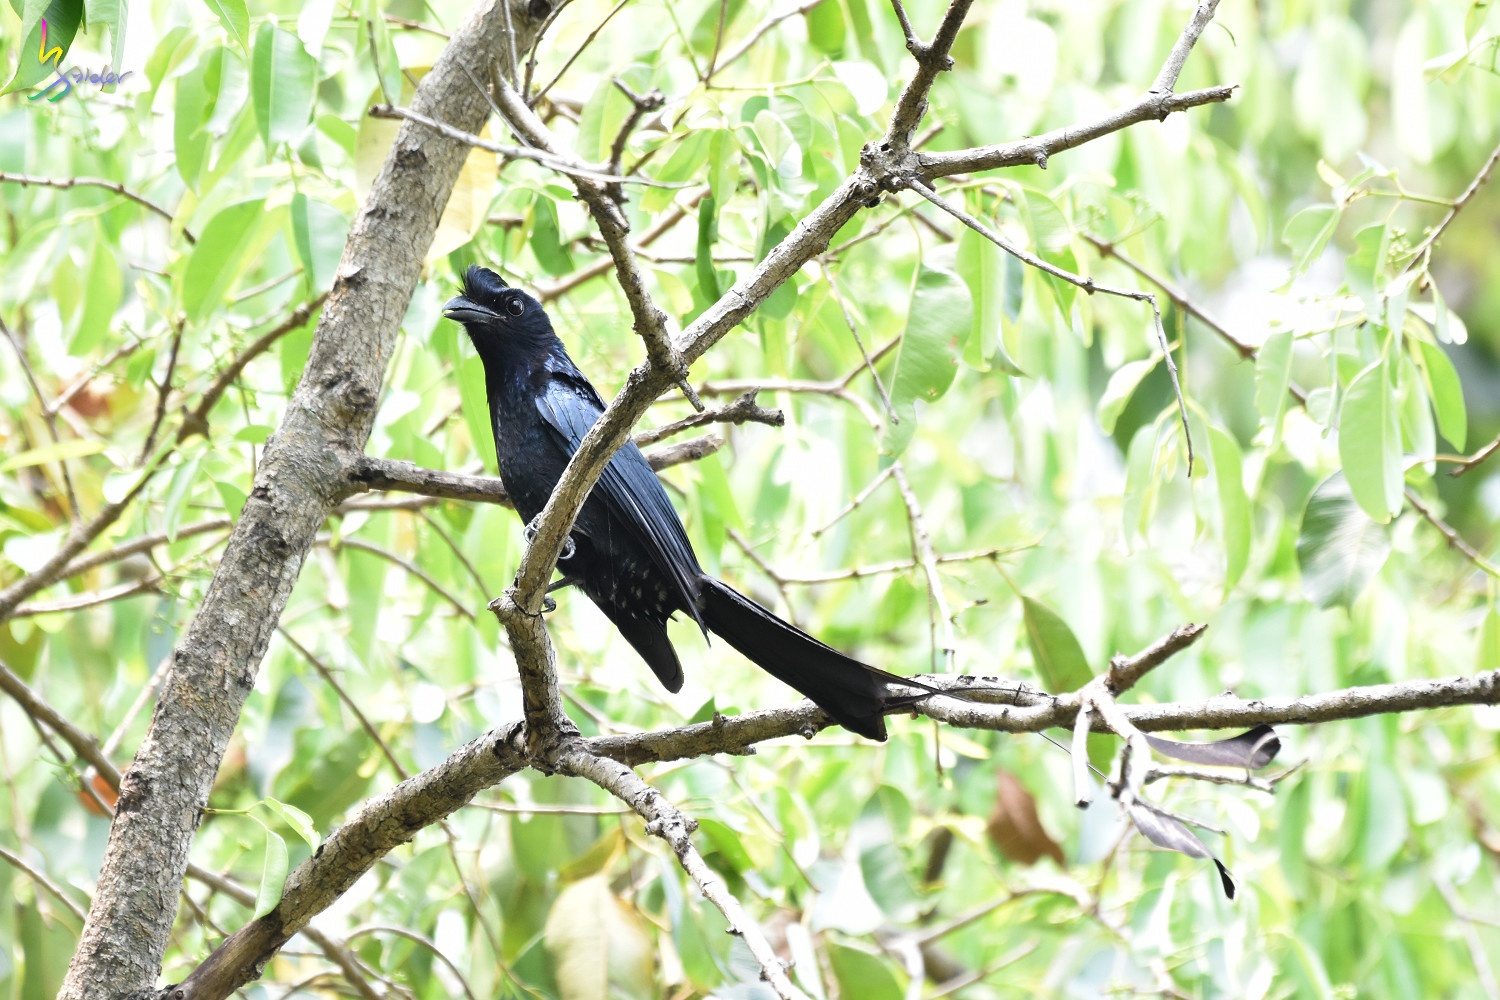 Greater_Racket-tailed_Drongo_1344